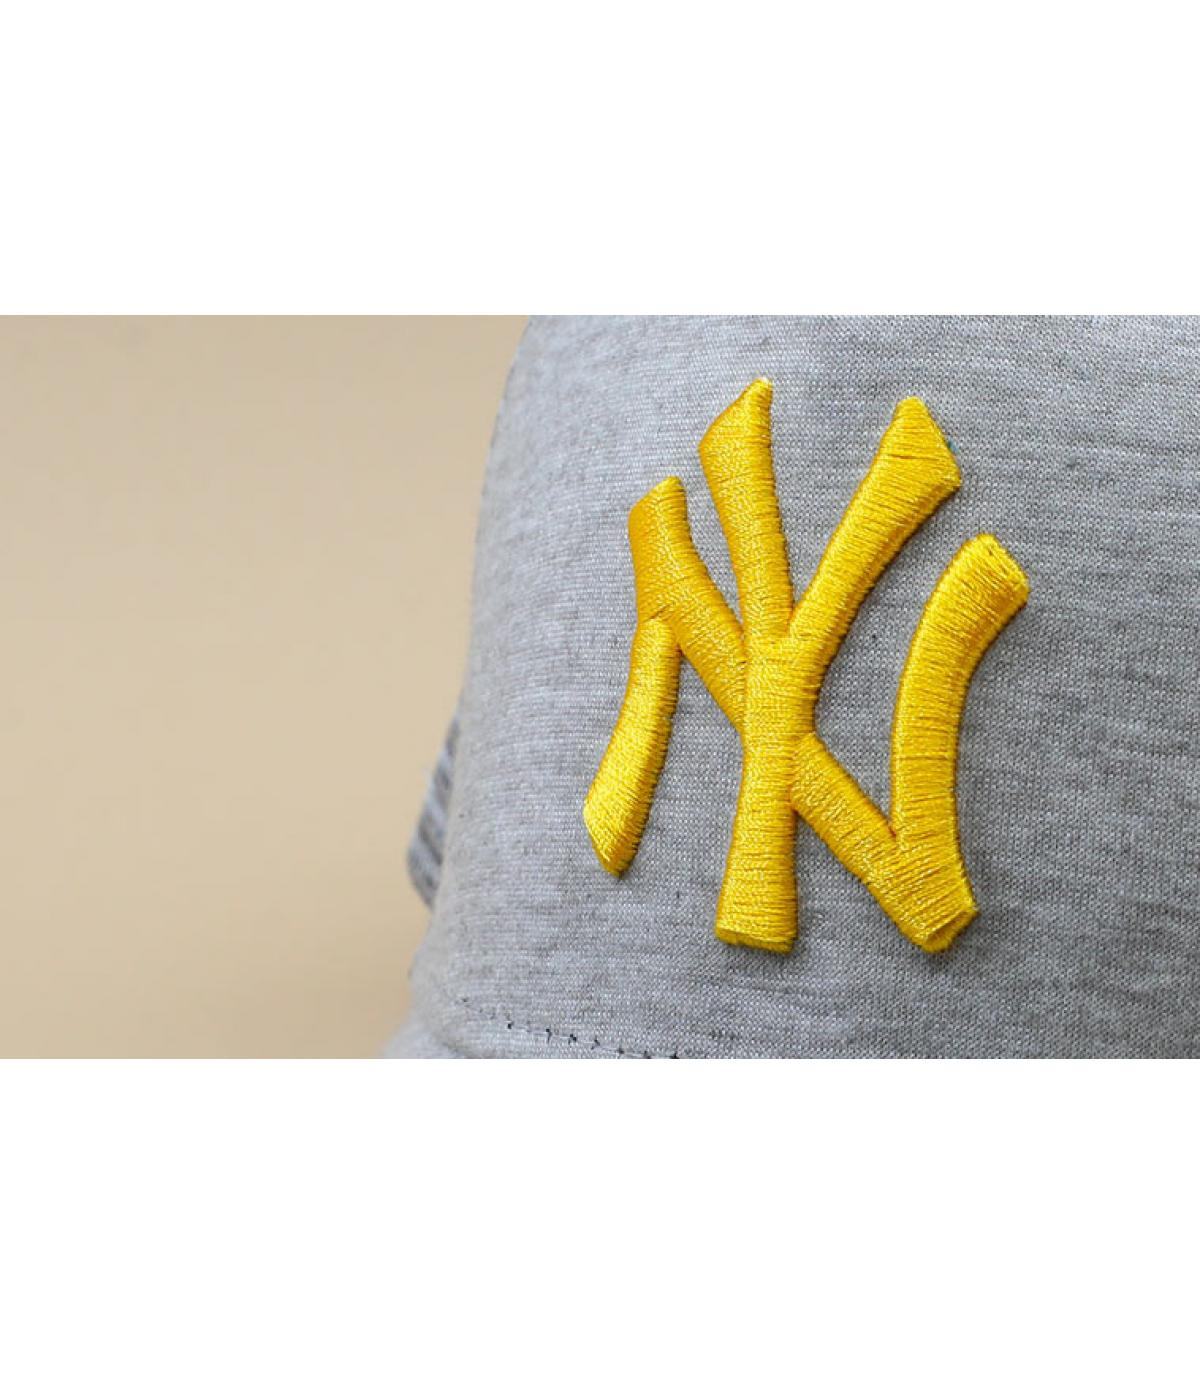 Détails Trucker Kids Jersey Ess NY grey mellow yellow - image 3